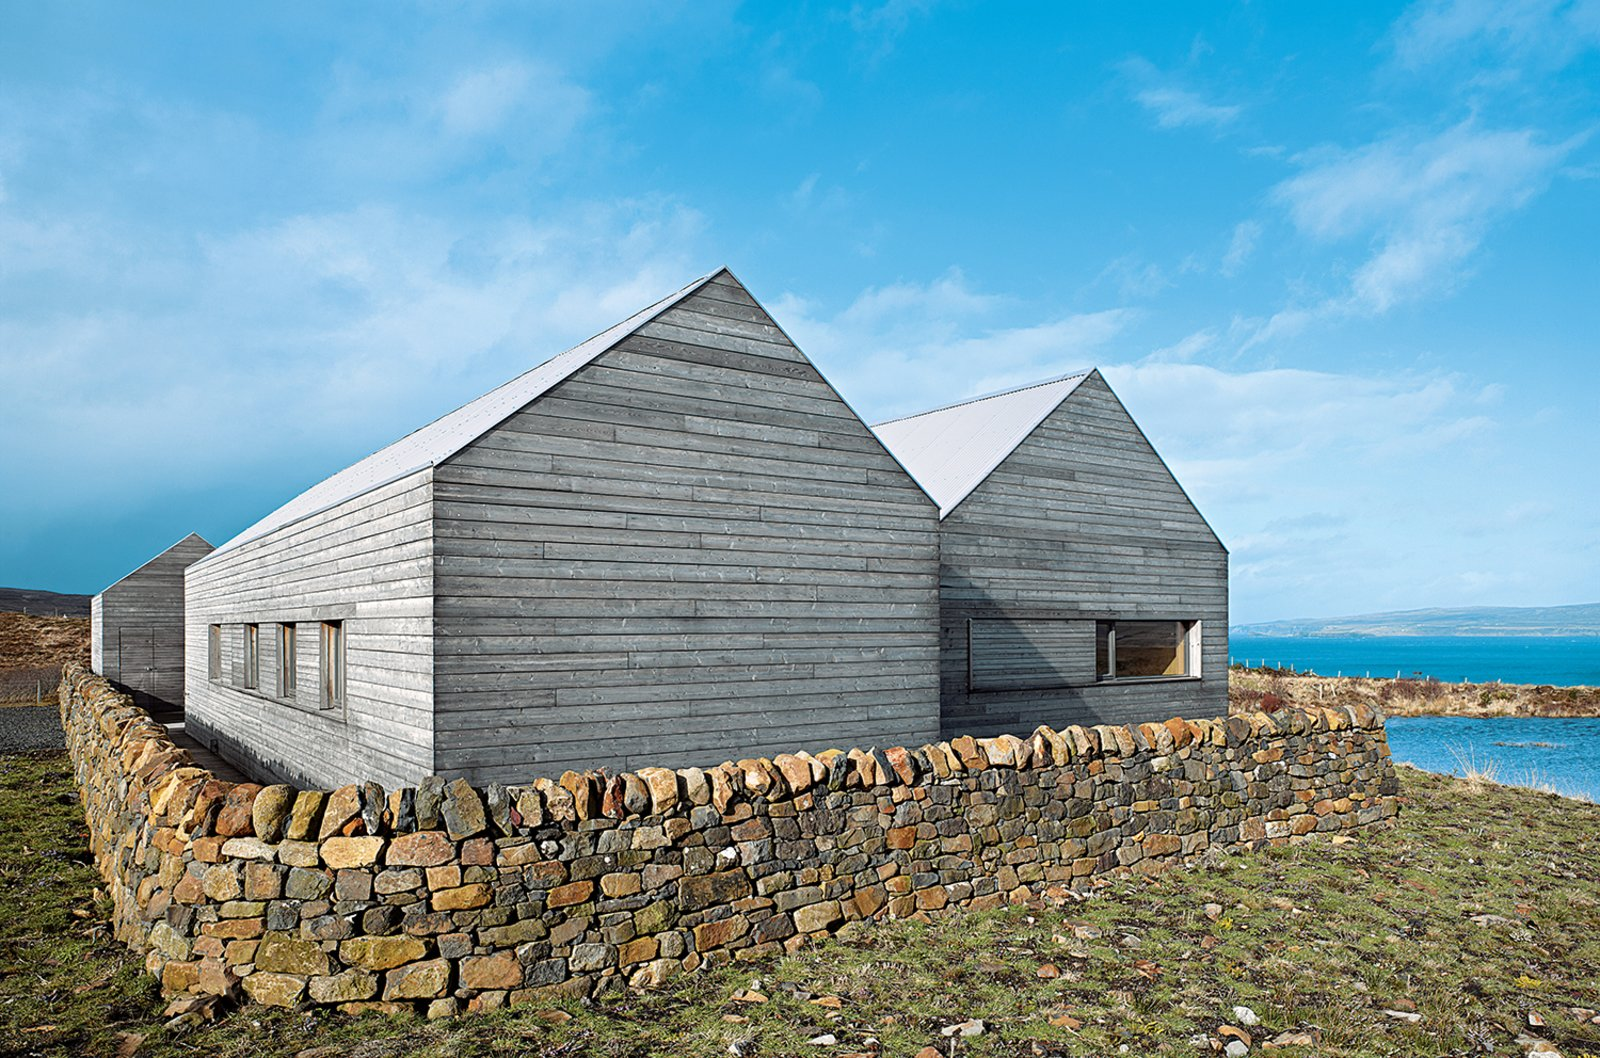 Photo 1 of 3 in A Pitched-Roof Dwelling on Scotland's Isle of Skye